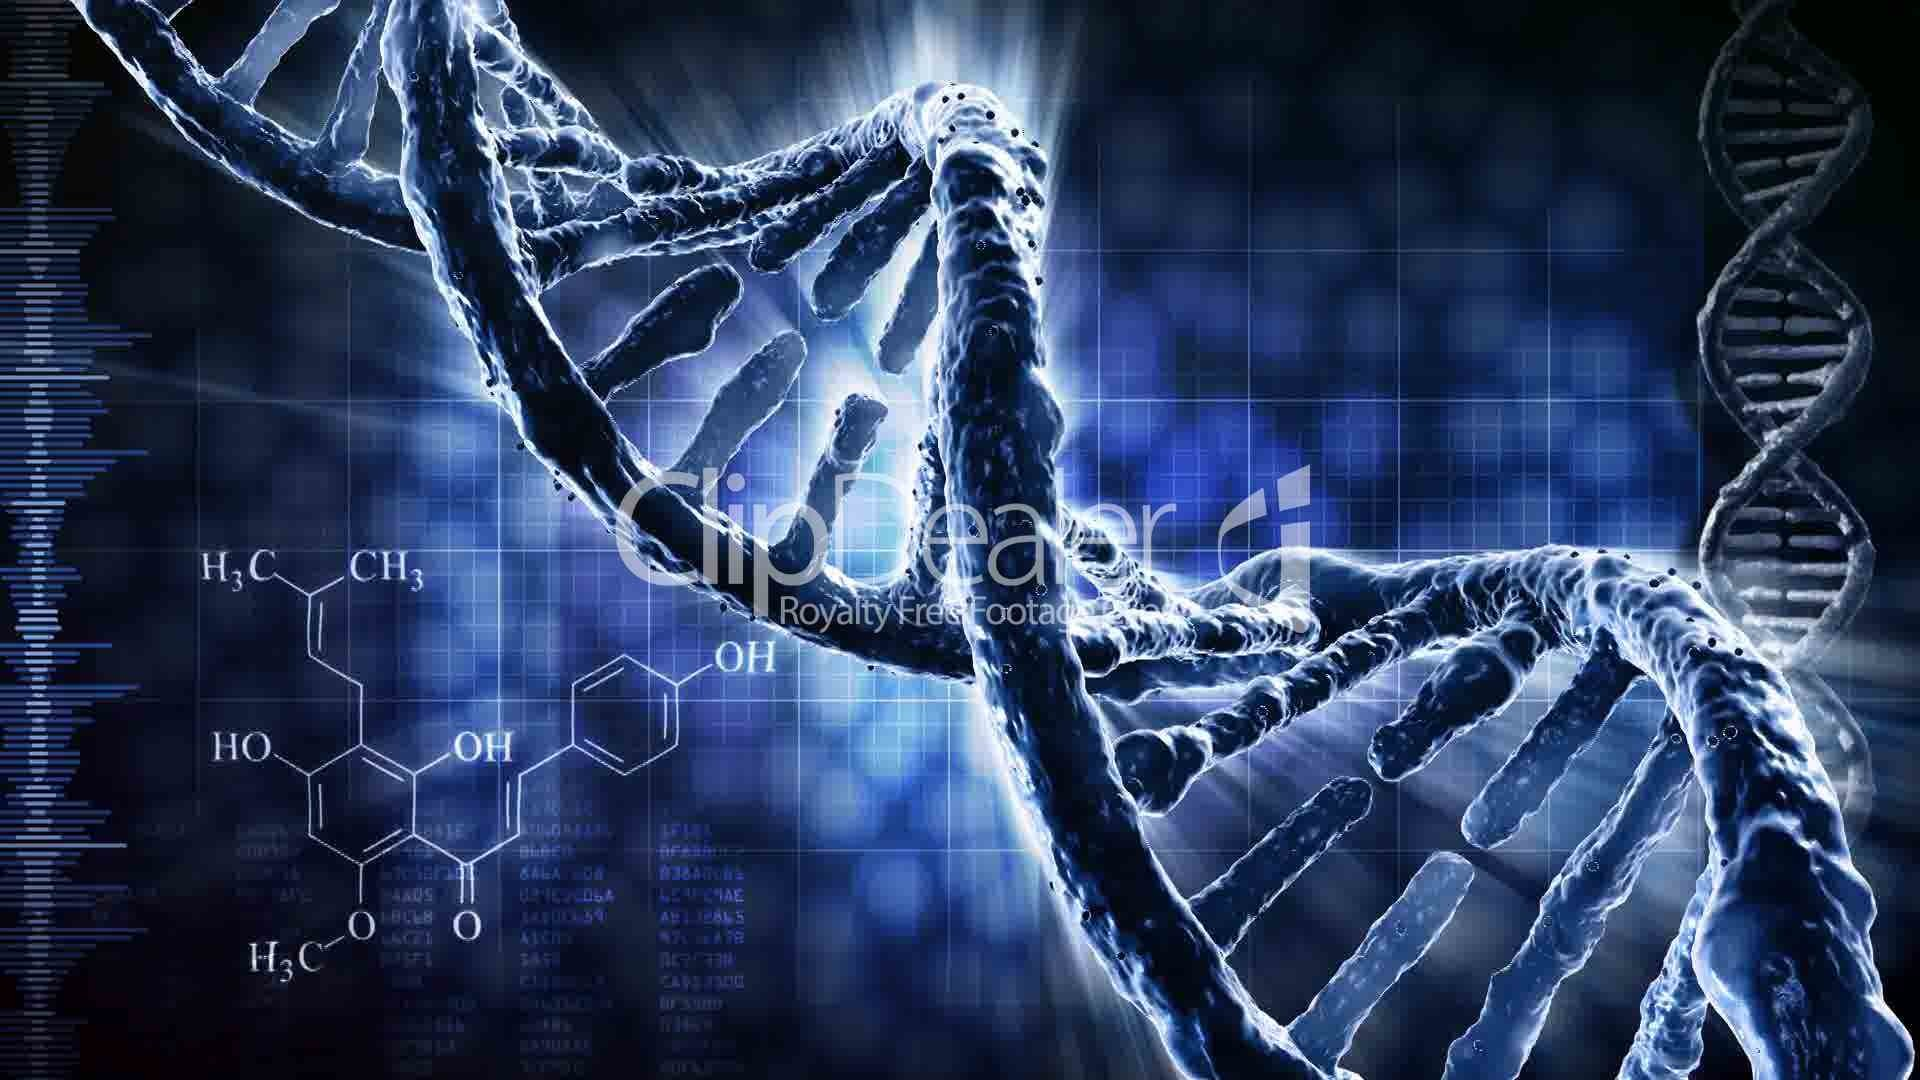 a comparison of dna theories and experiments in the science of biology Theories and doctrines of ernst  (biology) the field of science concerned with  conception, copulation, cytoplasm, diffusion, digestion, diploid, division, dna.